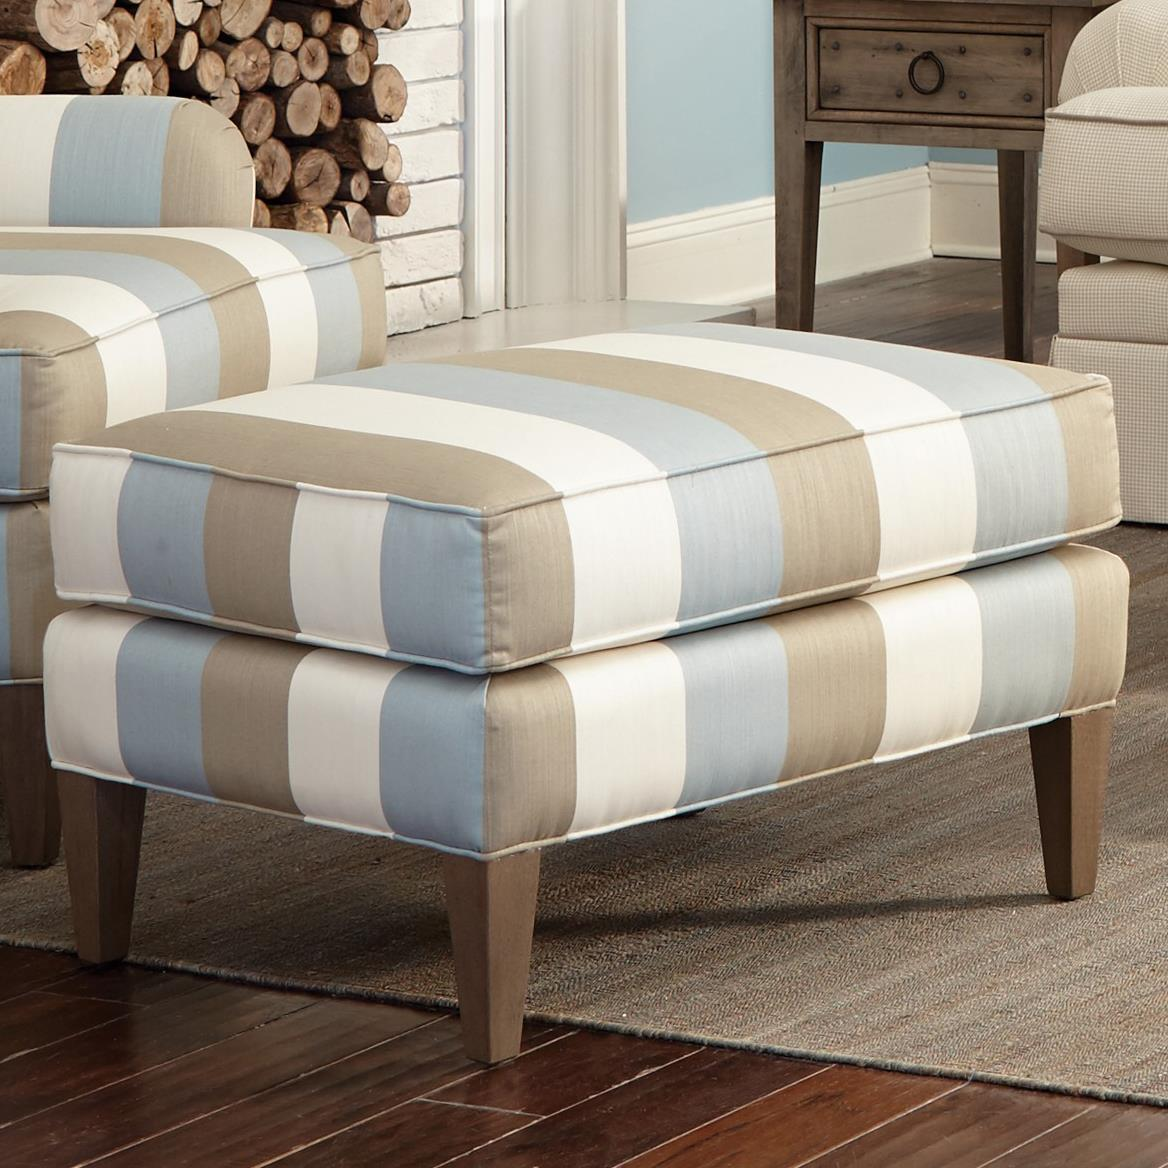 Accent Chairs Ottoman by Craftmaster at Baer's Furniture